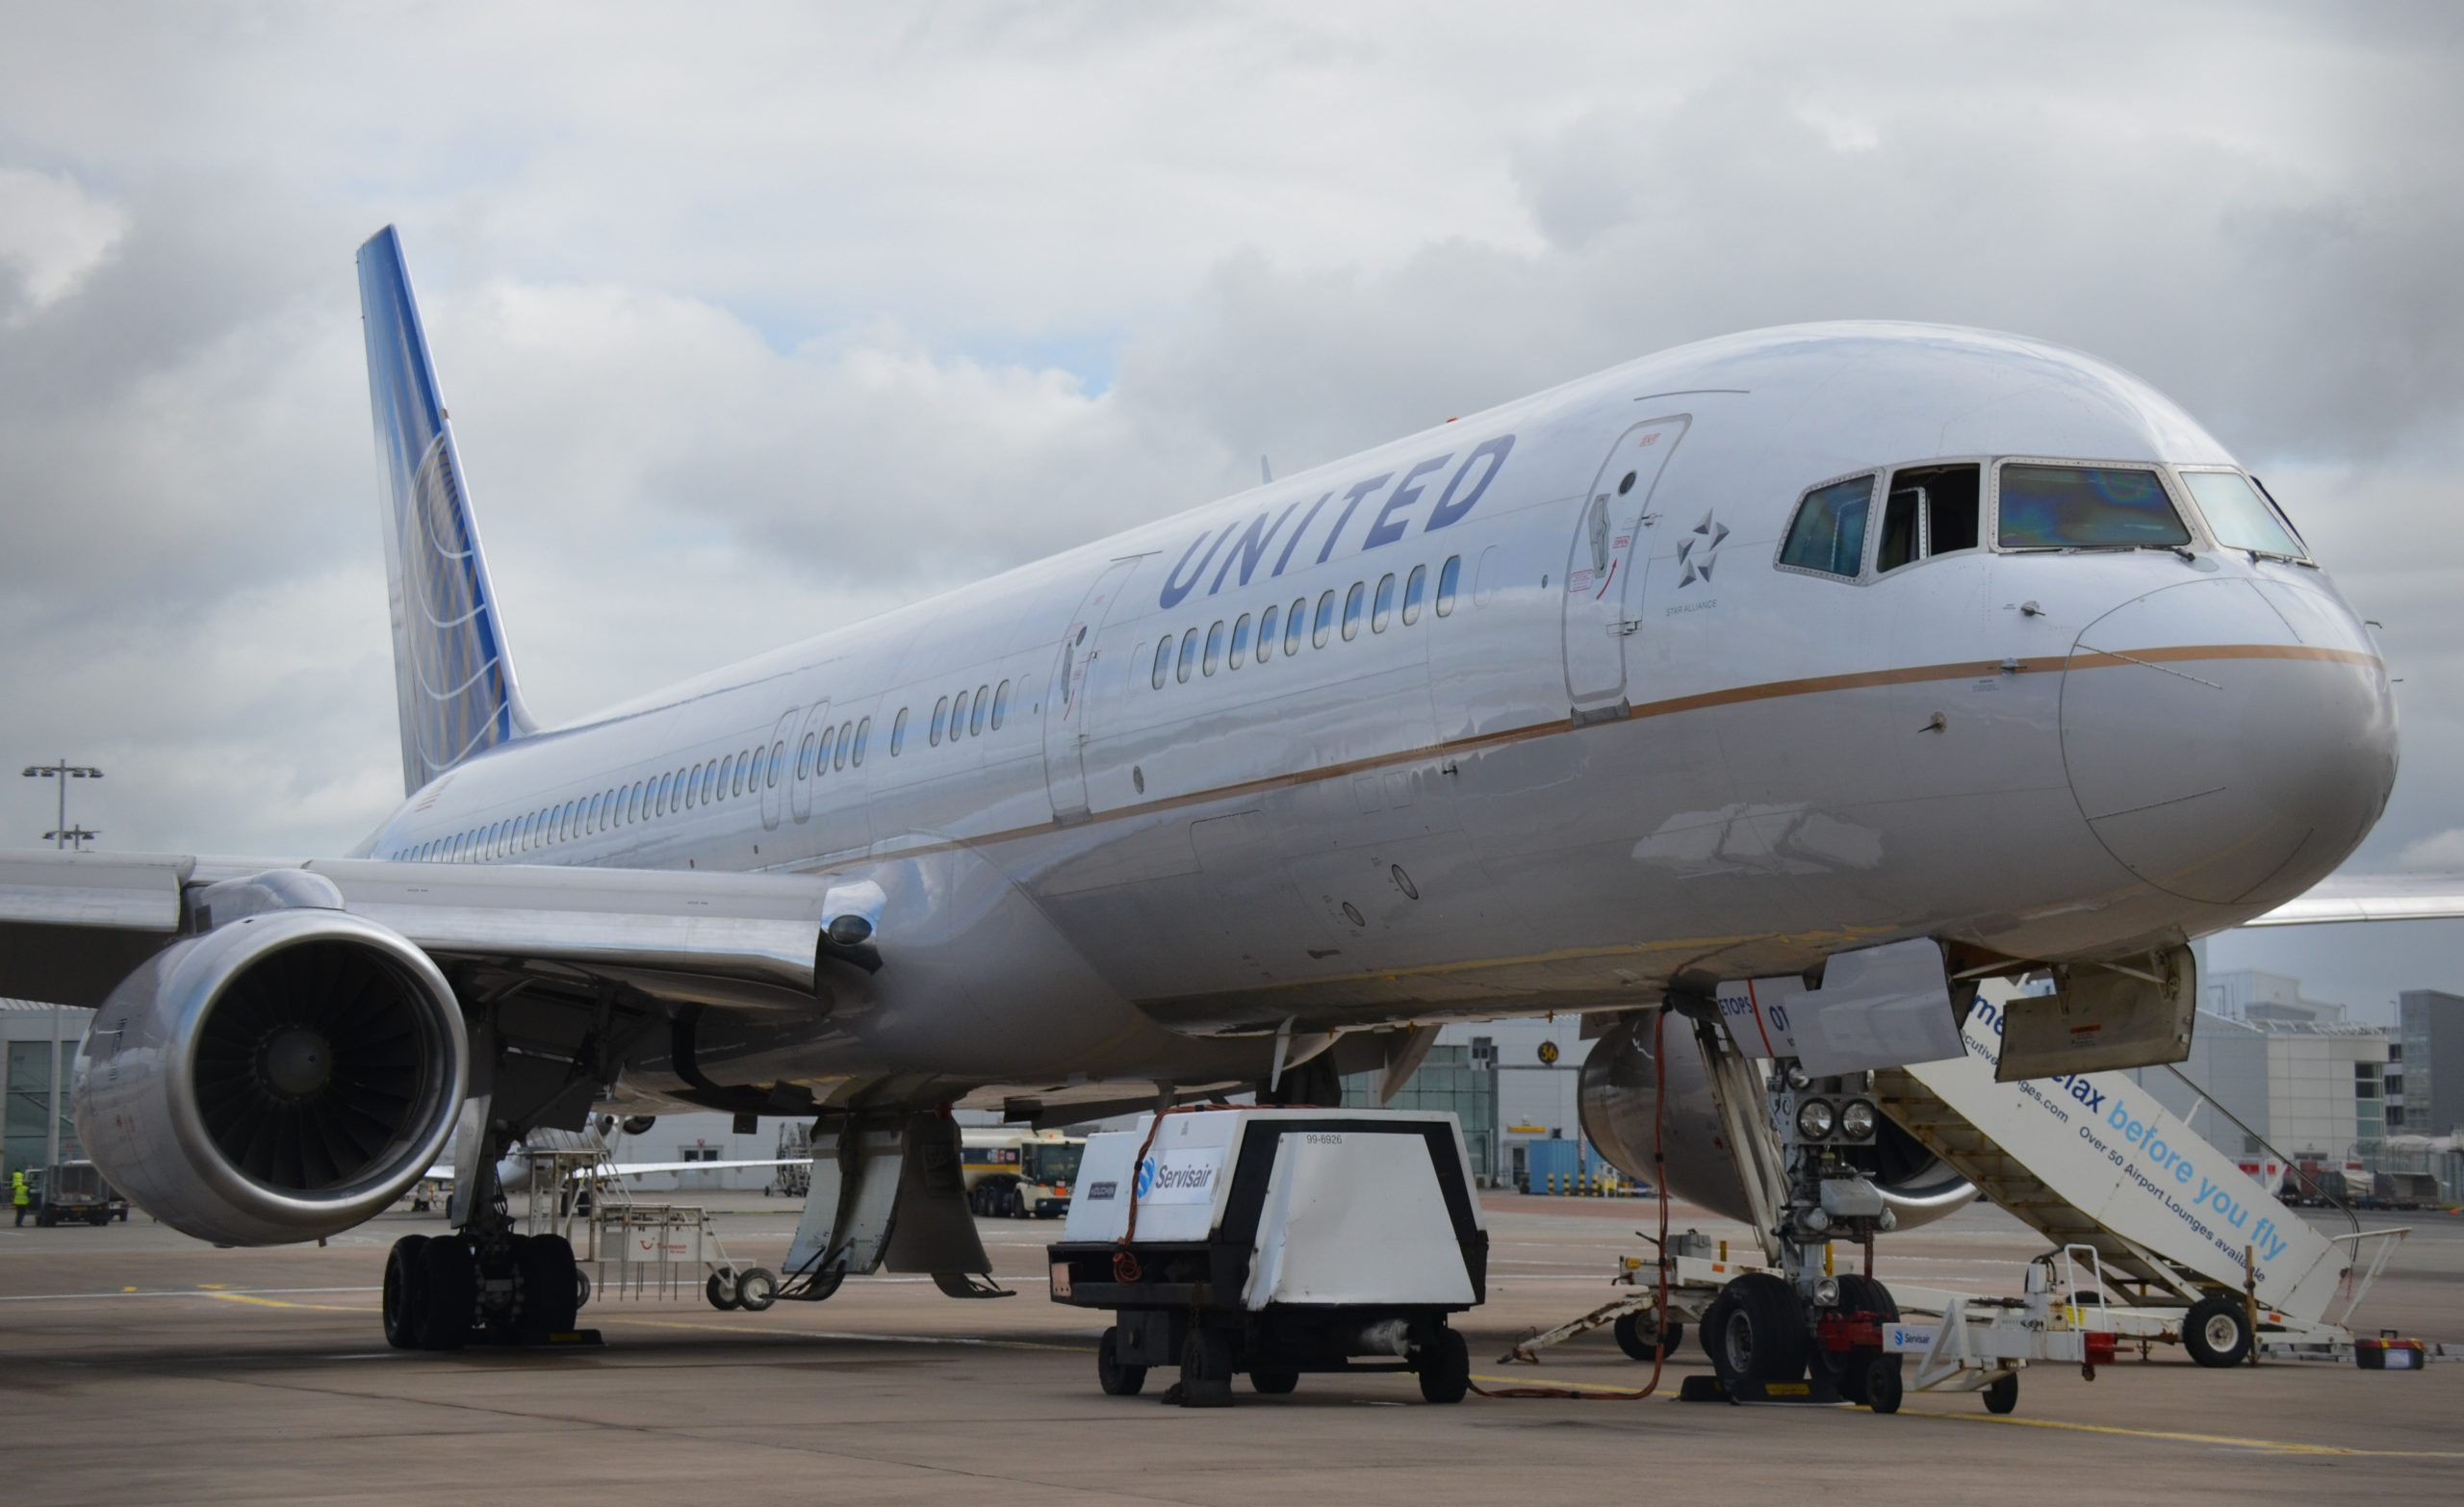 Boeing 757-200 fra United Airlines. (Foto: Russavia | CC 2.0)